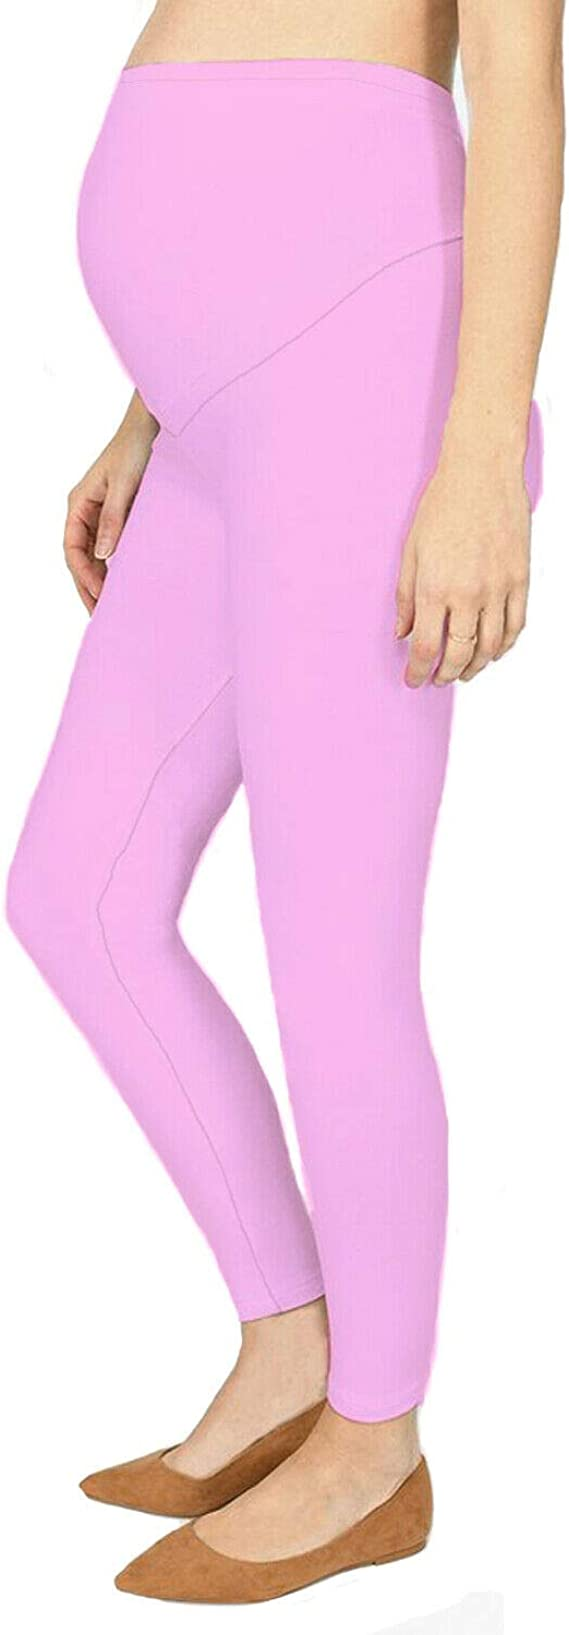 Over The Bump Full Length Stretchy Soft Viscose Leggings Women/'s Maternity